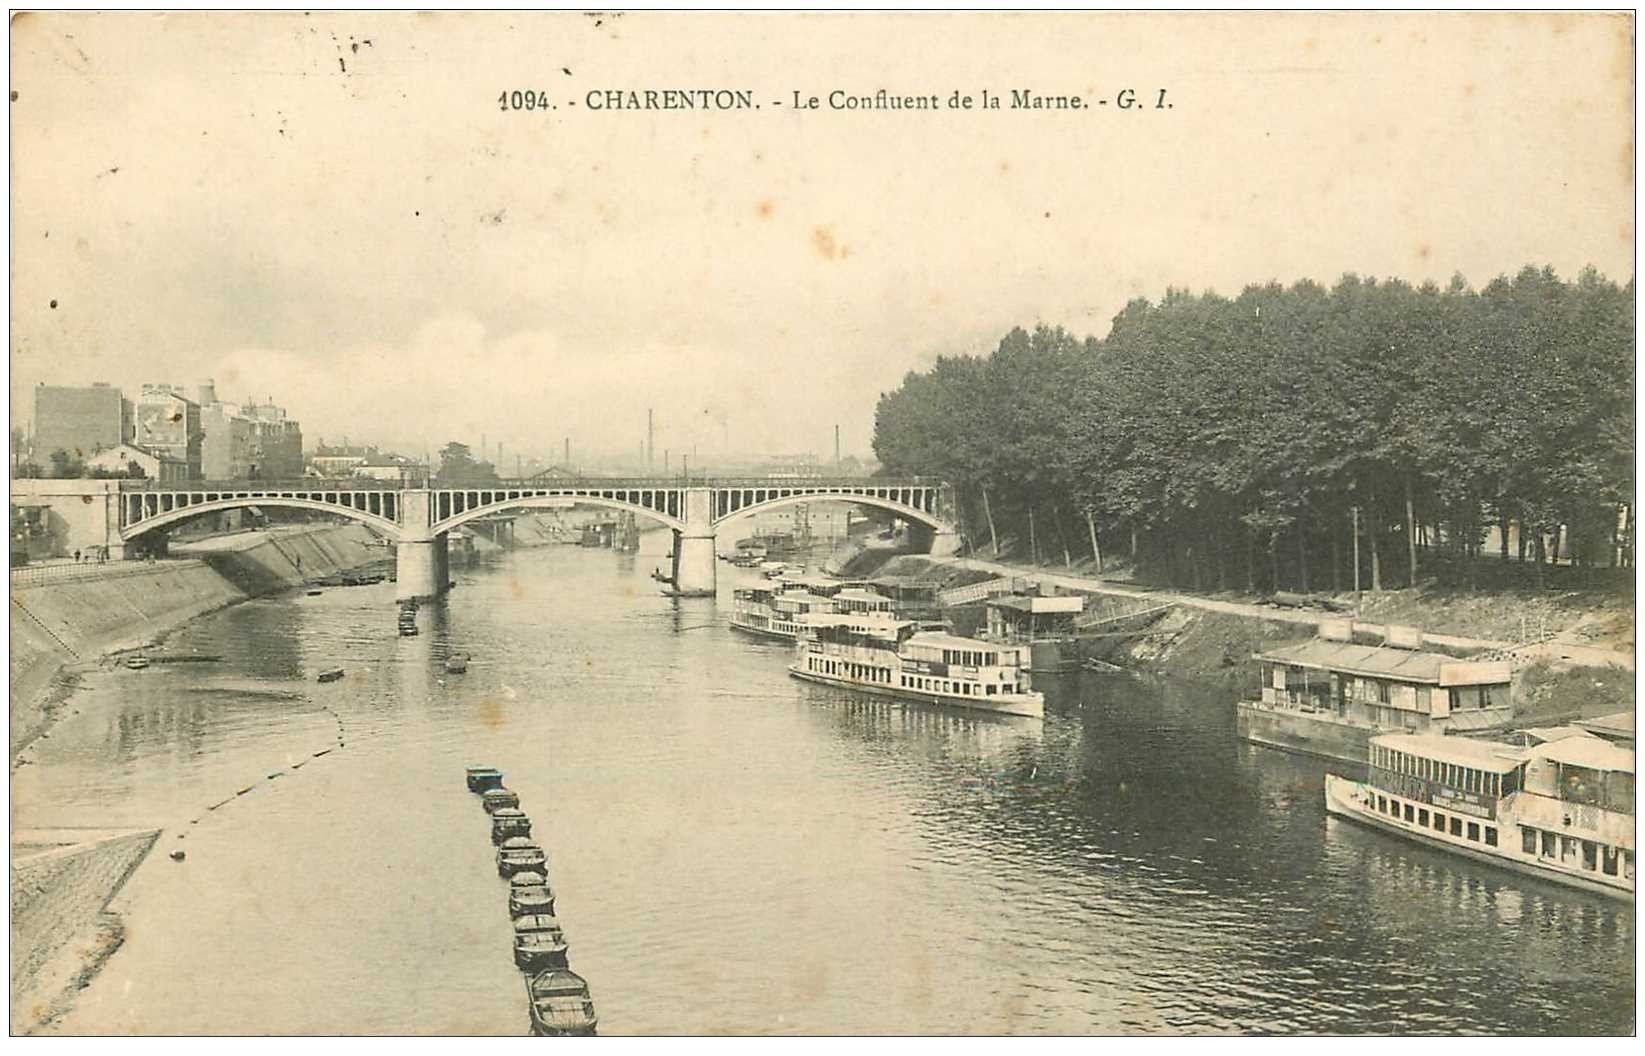 94 charenton le pont lavoir et bateaux mouche sur confluent de la marne 1909. Black Bedroom Furniture Sets. Home Design Ideas